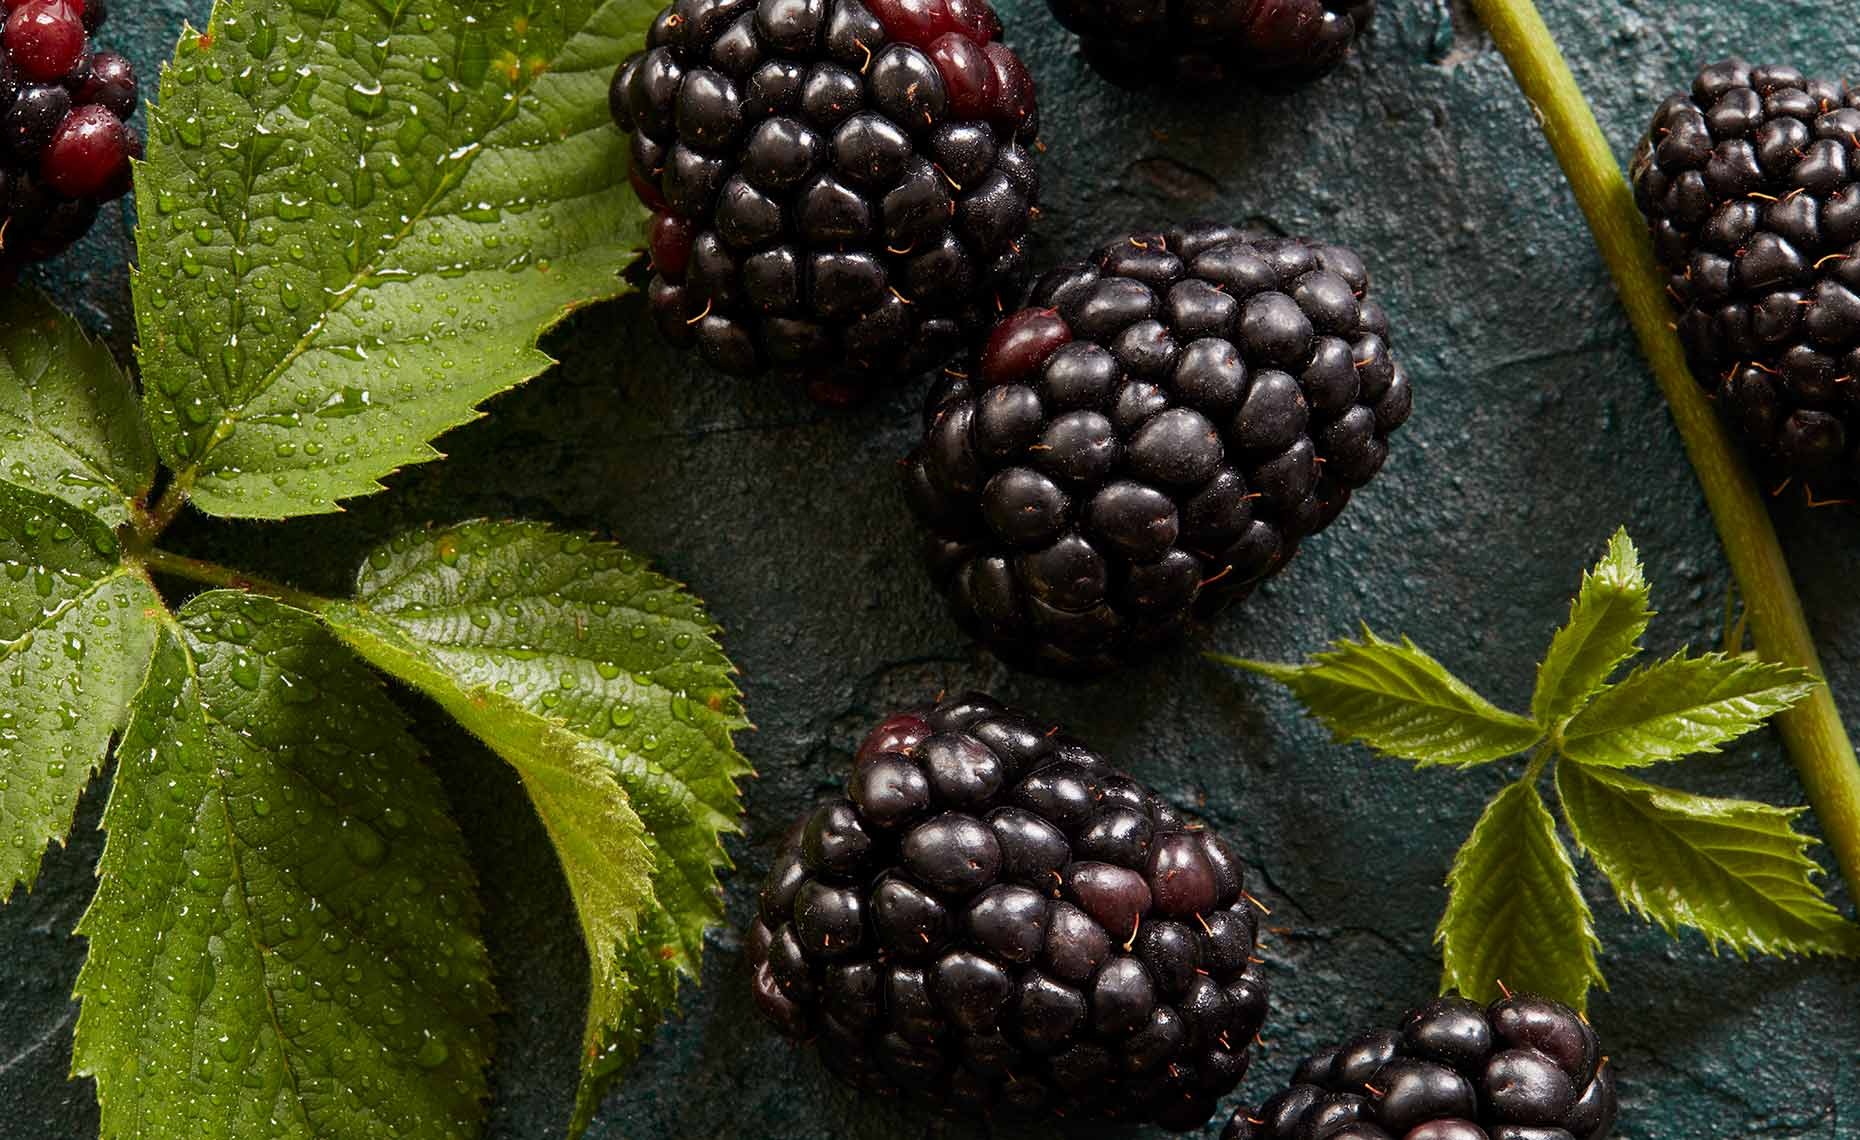 appetizers-fruits-vegetables-photographers-black-berries-96